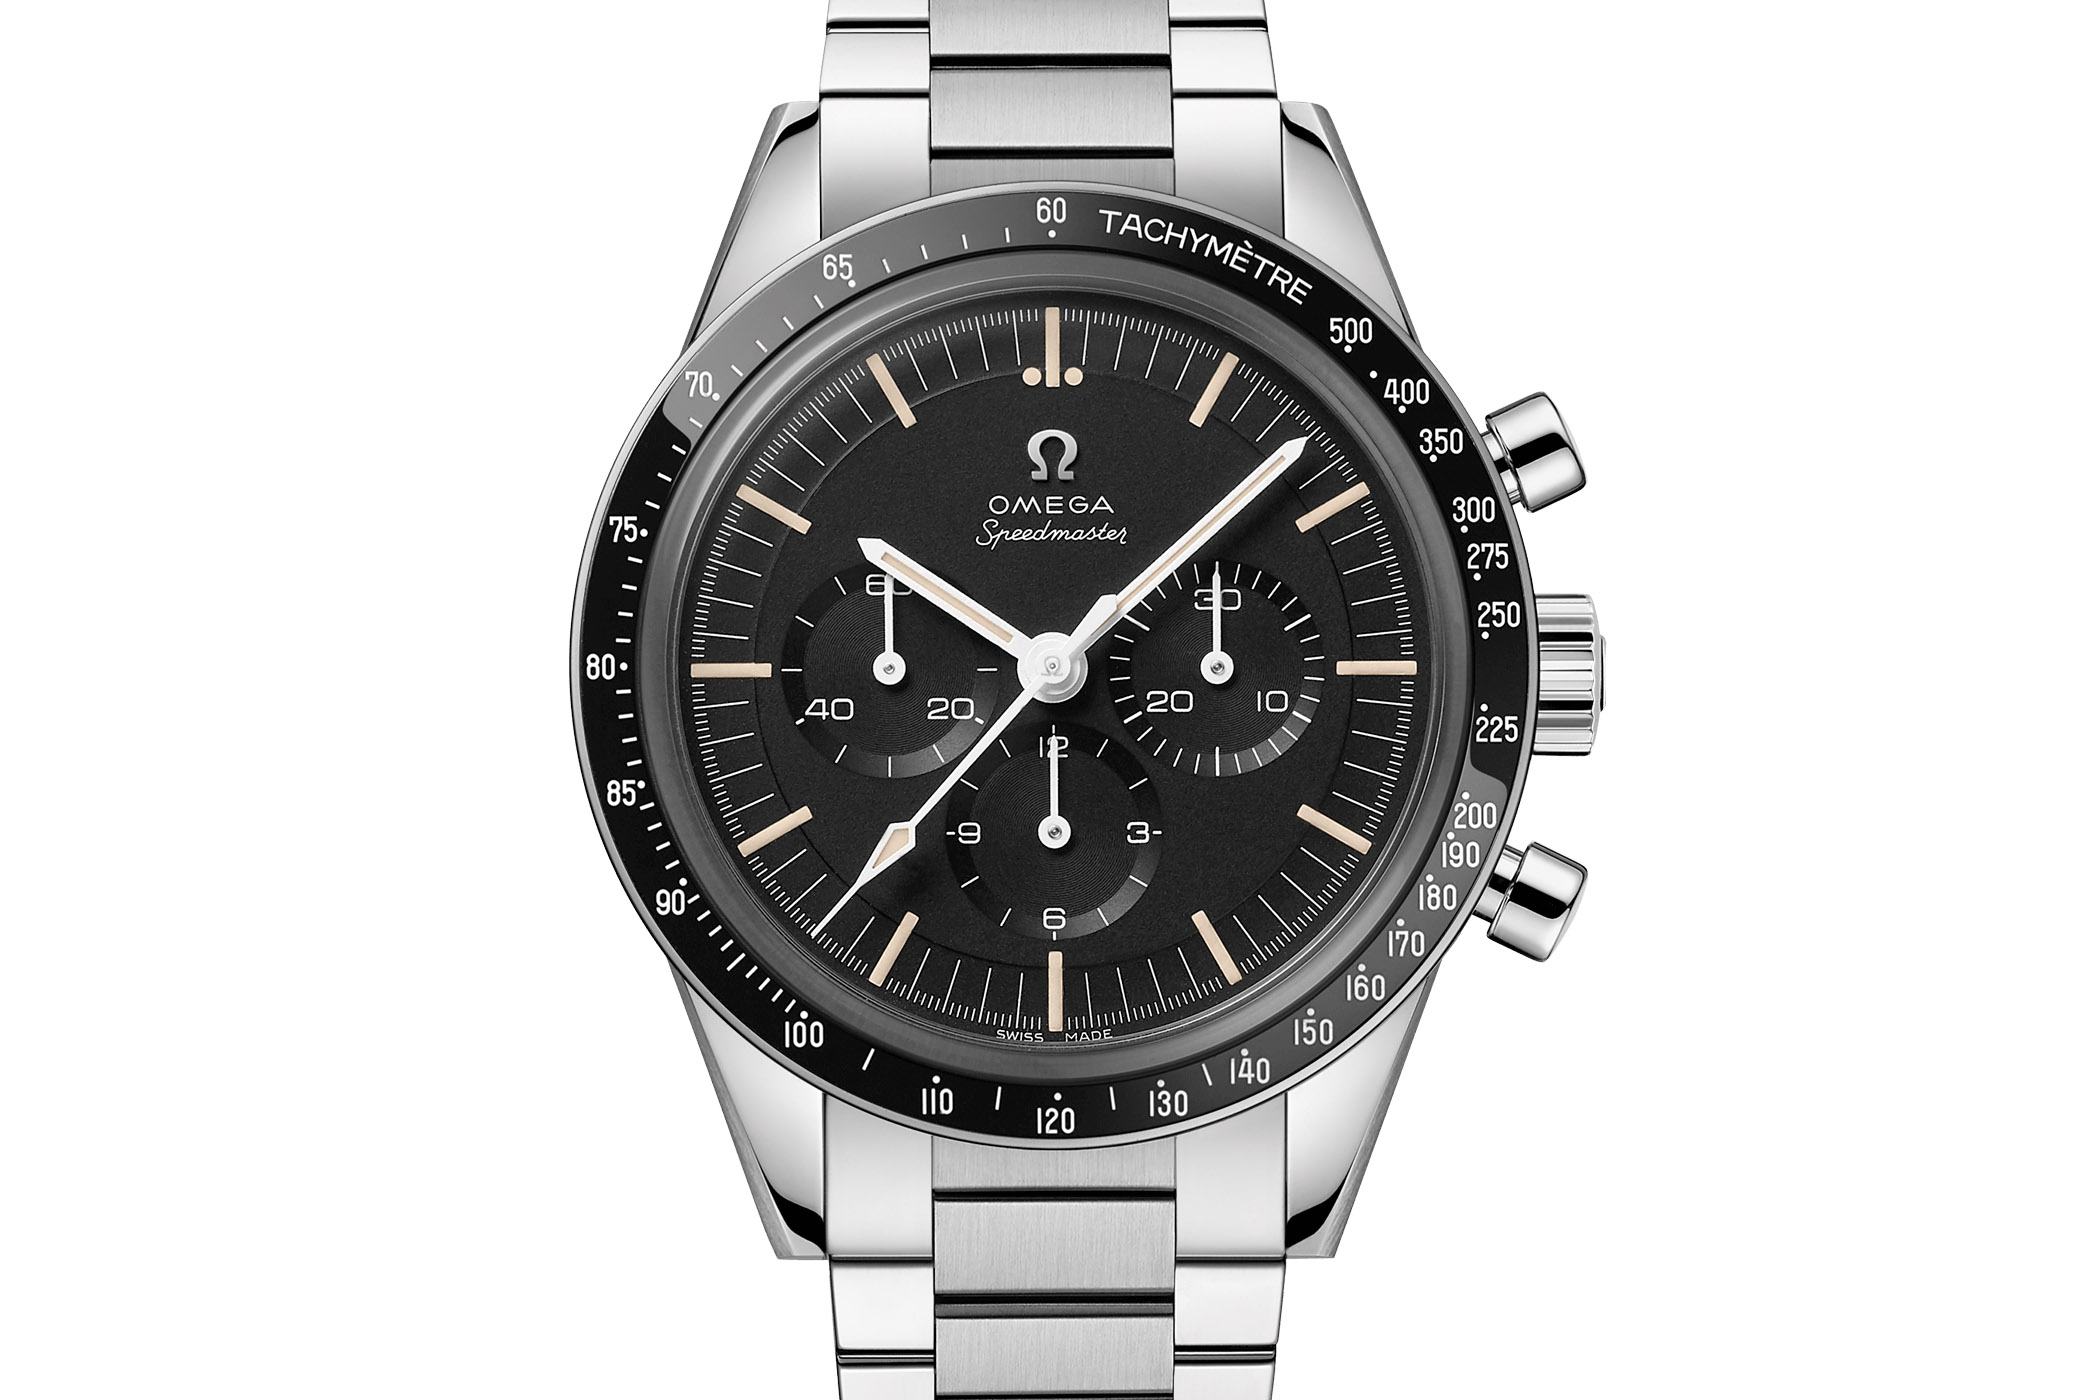 Omega Speedmaster Moonwatch 321 Stainless Steel Ed White - 311.30.40.30.01.001